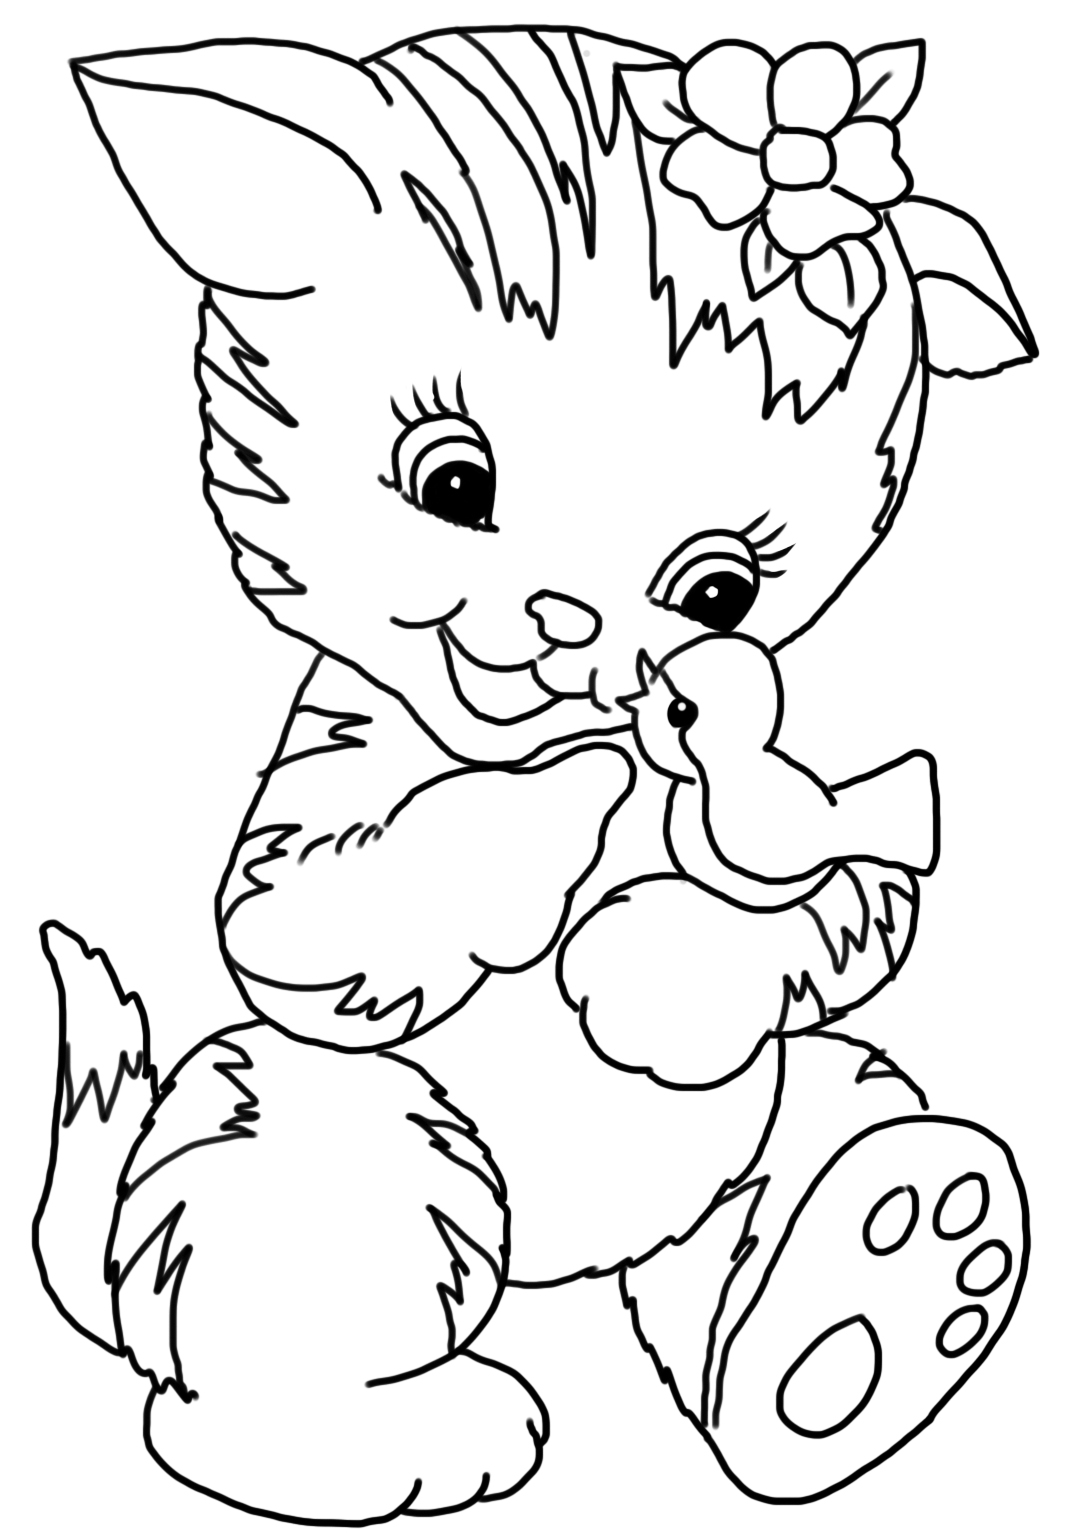 cat colouring pages cat coloring pages learn to coloring cat colouring pages